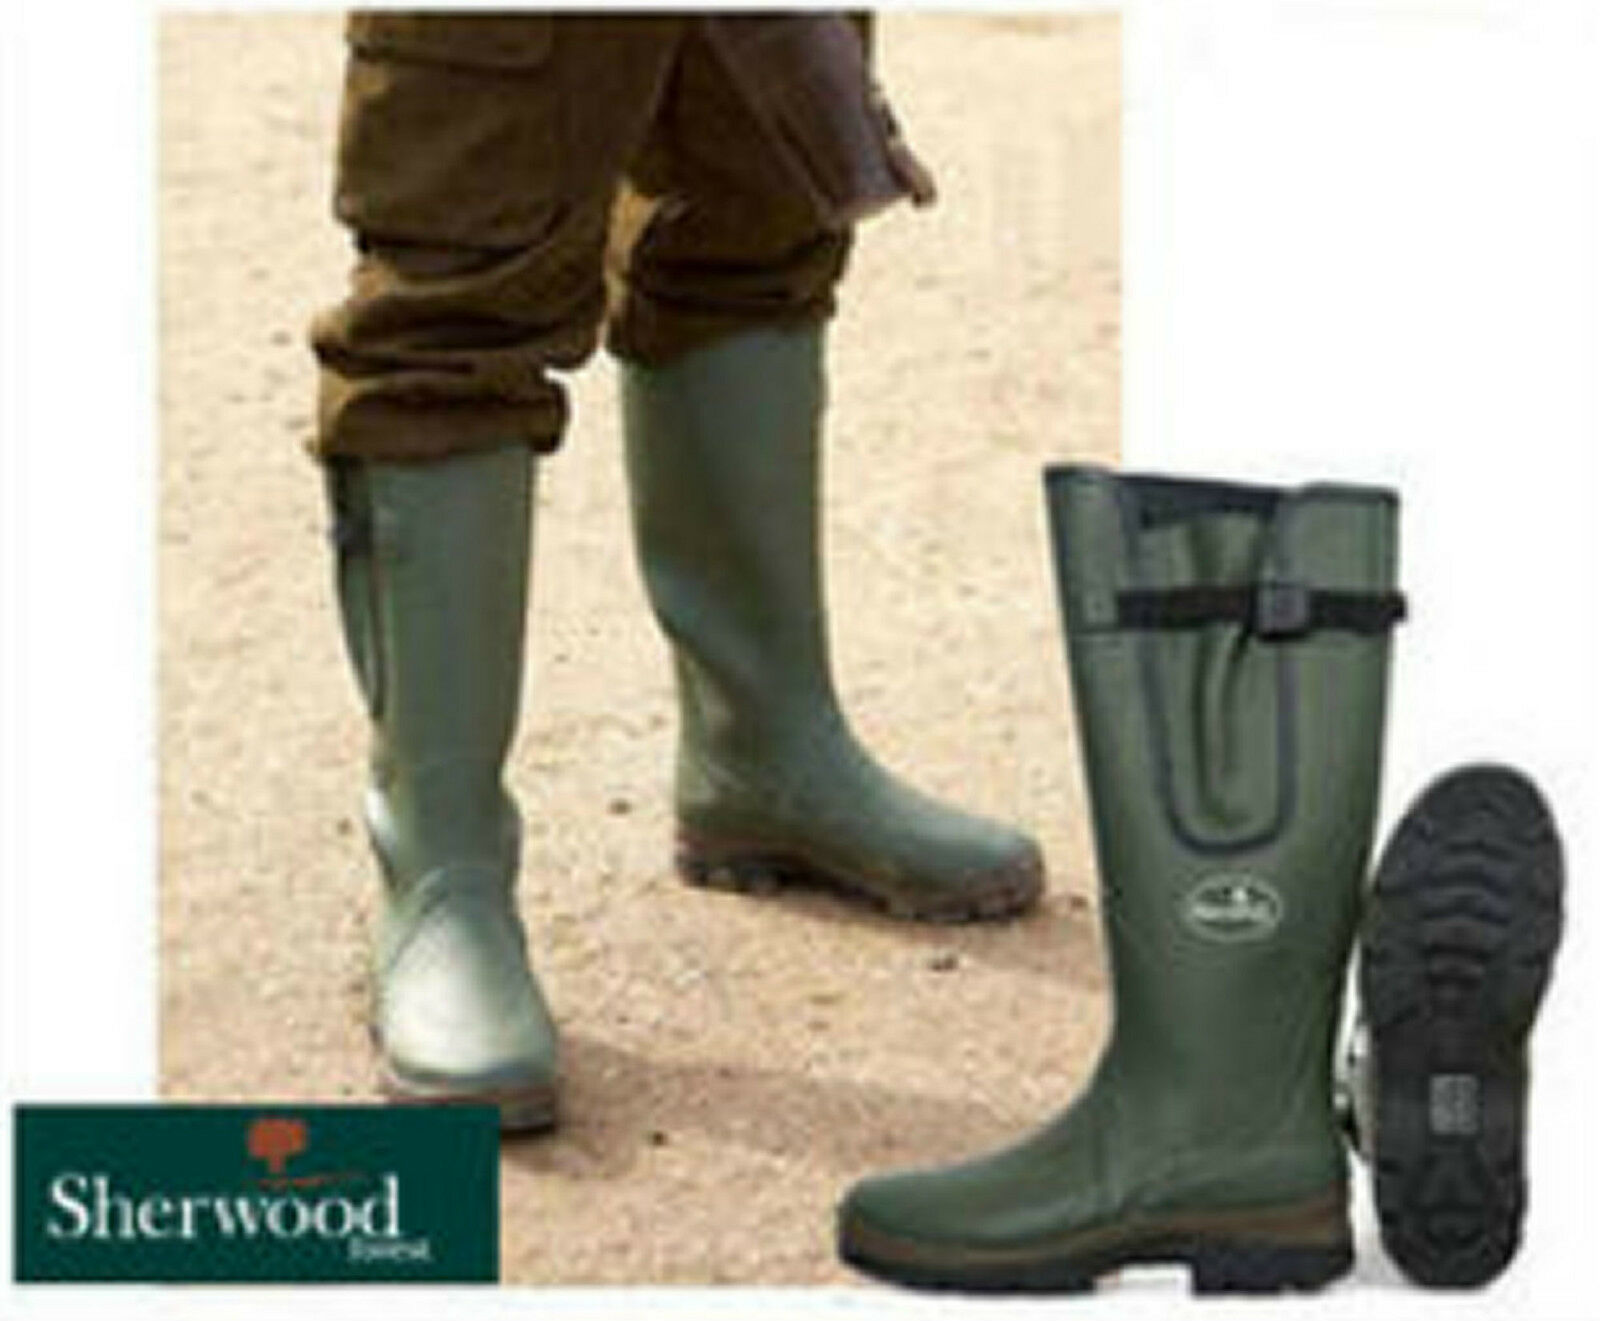 SHERWOOD FOREST UNISEX ANVIL WELLINGTON BOOTS HUNTING SHOOTING WELLIES BOXED